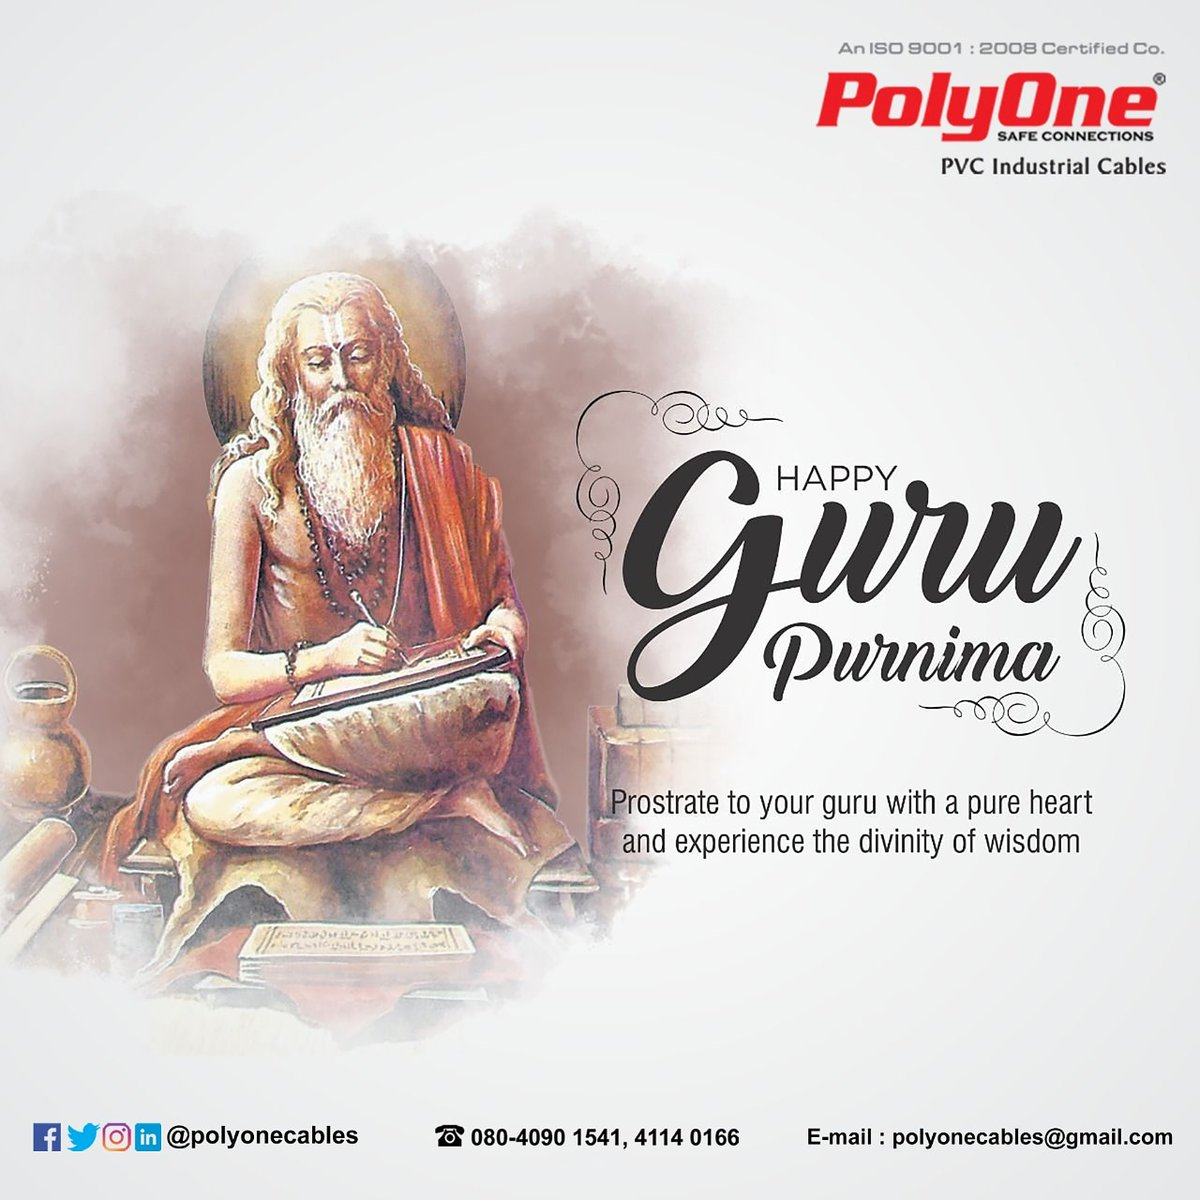 #HappyGuruPurnima   polyonecables@gmail.com  #polyone #cables #gurupurnima #gurupurnima2020 #purnima #wires #topicalspot #trendingnow #soacialmedia #environmentday #industrialwire #creativespot #Industry #electrical #occassionspot #digitalmarketing #madovermarketing https://t.co/ZRomTQHI1k